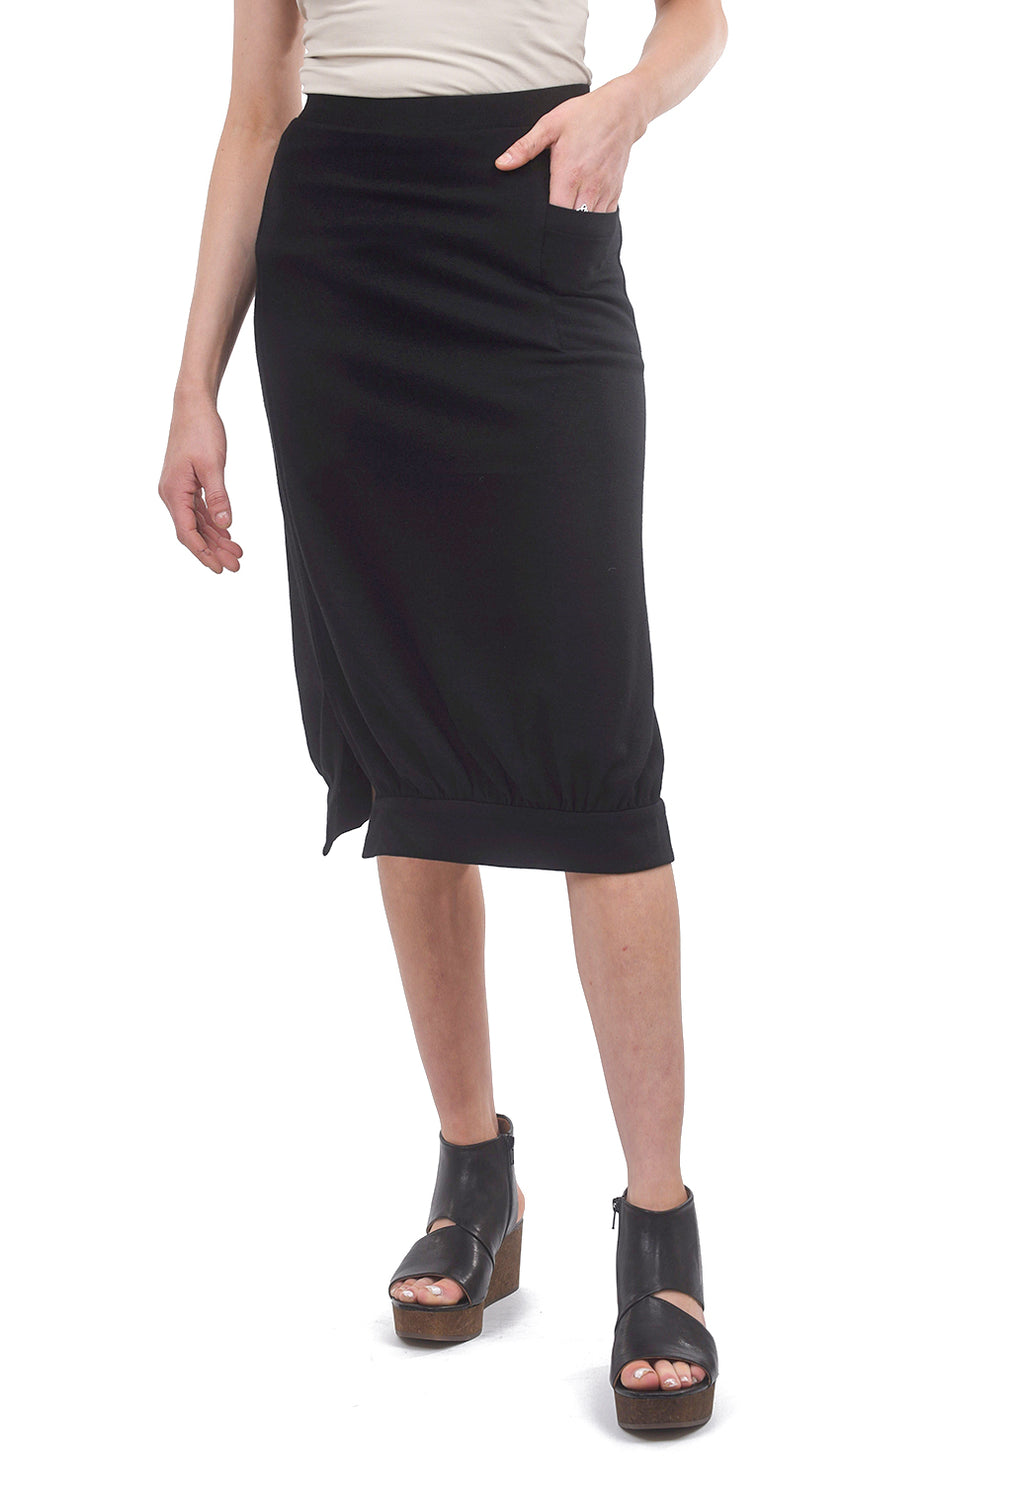 a.oei studio Square-Knit Skirt, Black